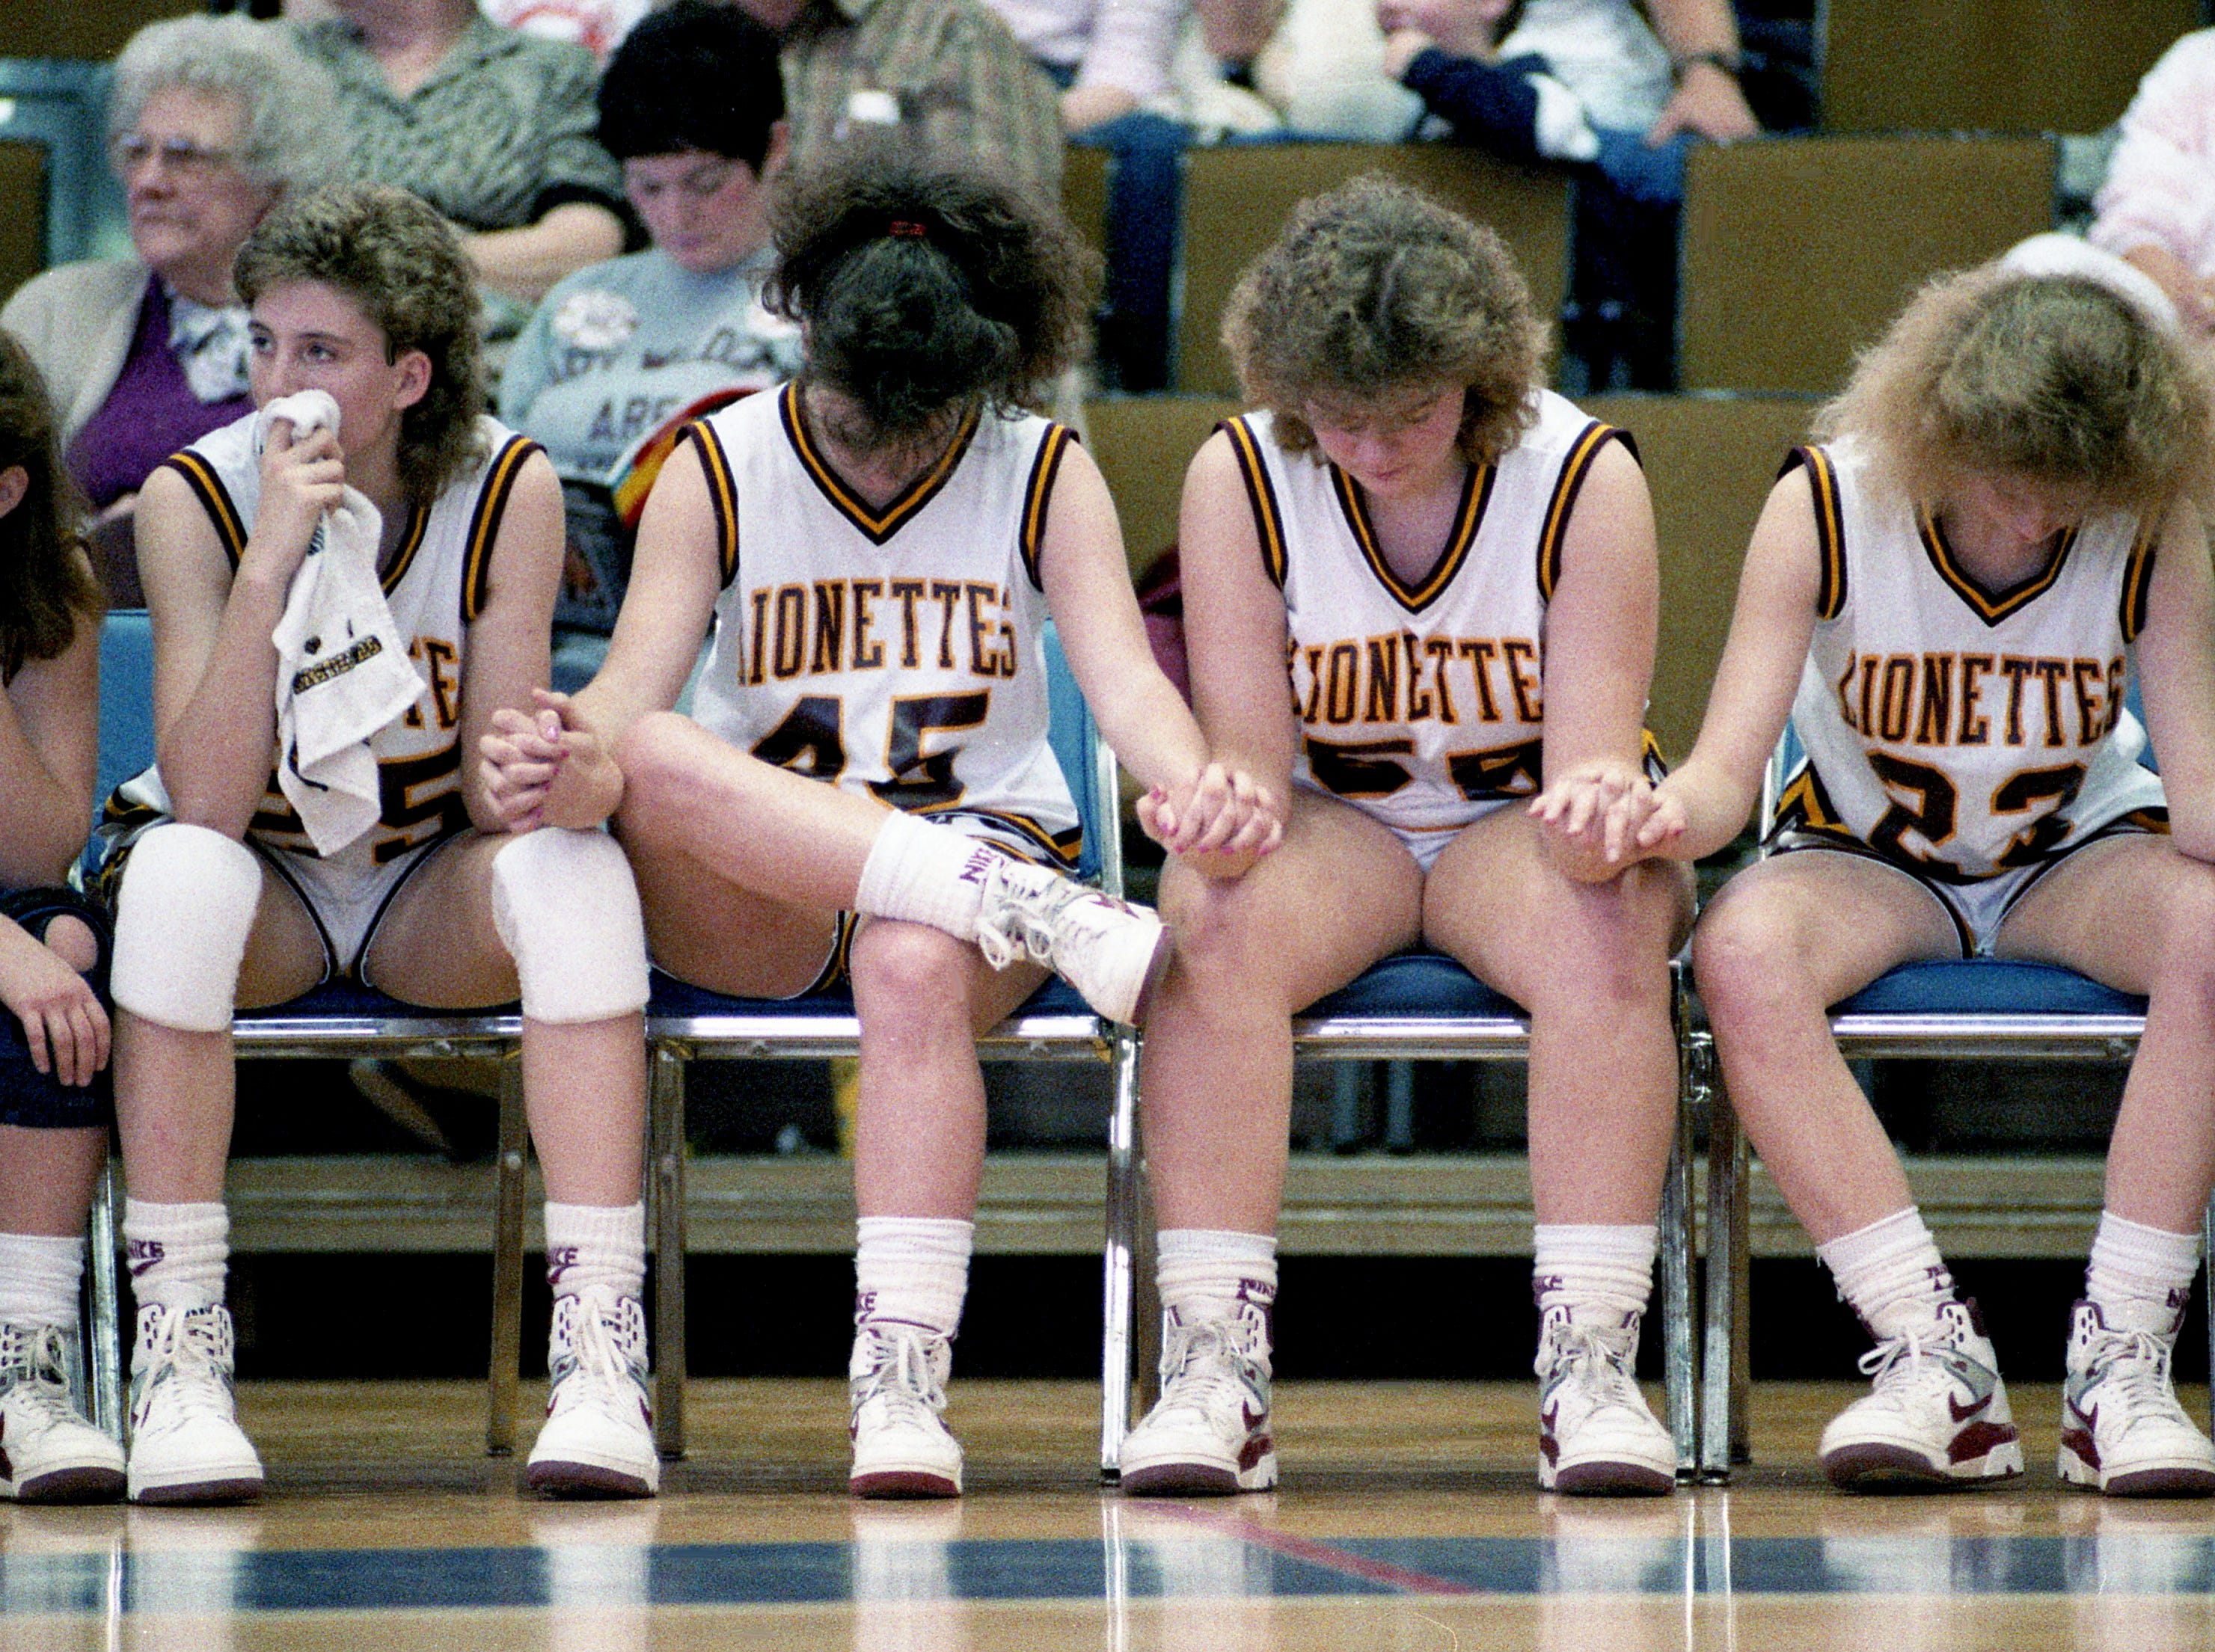 The Cannon County High bench offers silent support as they faced two-time defending champions South Greene High in overtime during the first round of the TSSAA Class AA State tournament at MTSU's Murphy Center in Murfreesboro on March 9, 1989. The players are Laveta Bassinger, left, Susan Wood, Charlotte Barks and Angie Sissom.